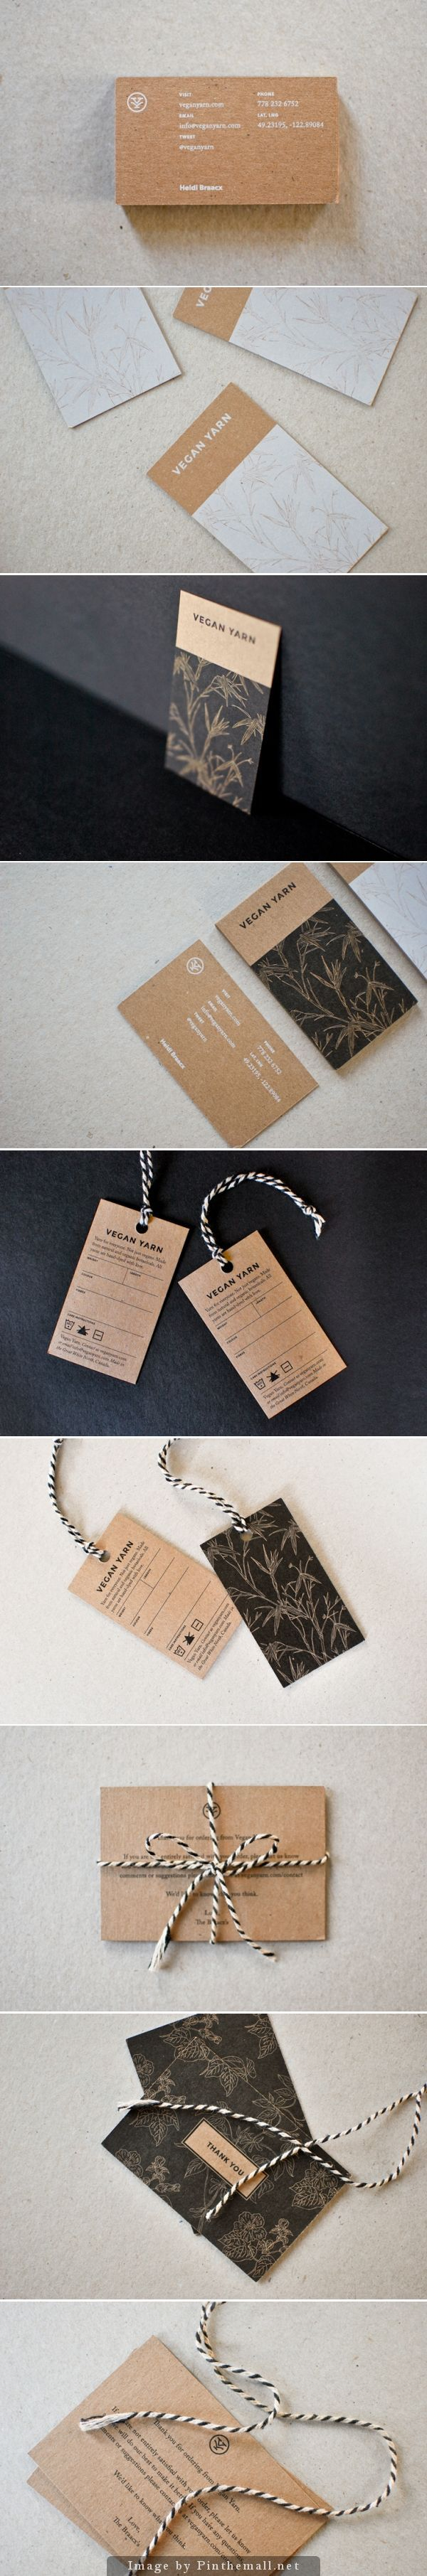 162 best Cards and cases images on Pinterest | Business cards ...